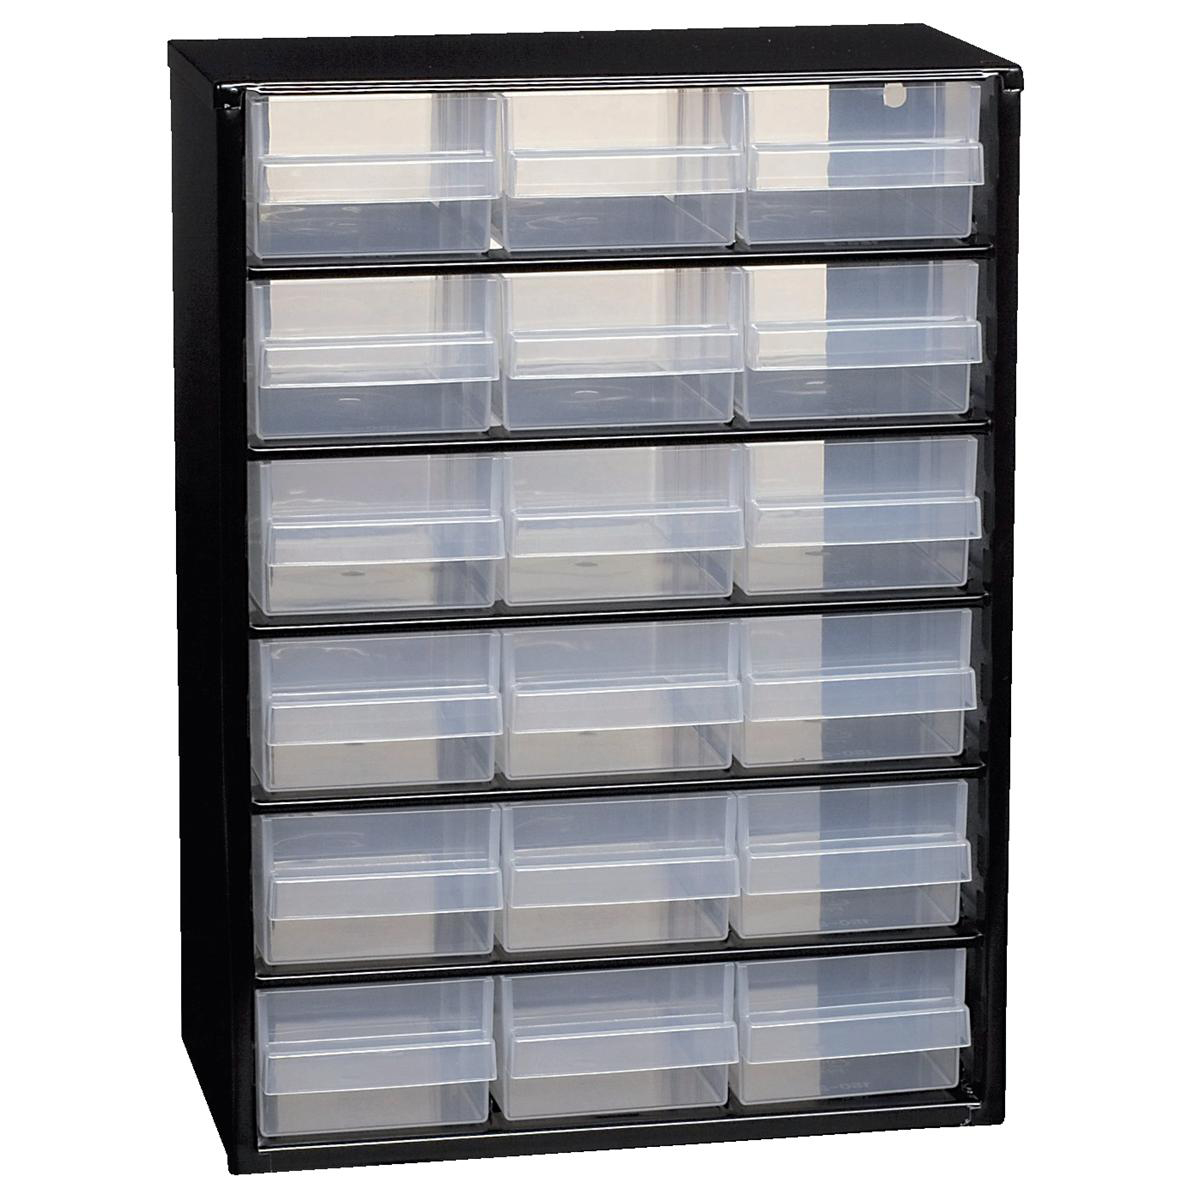 Containers Raaco Steel Cabinet 18 Polypropylene Drawers Black Ref 132022